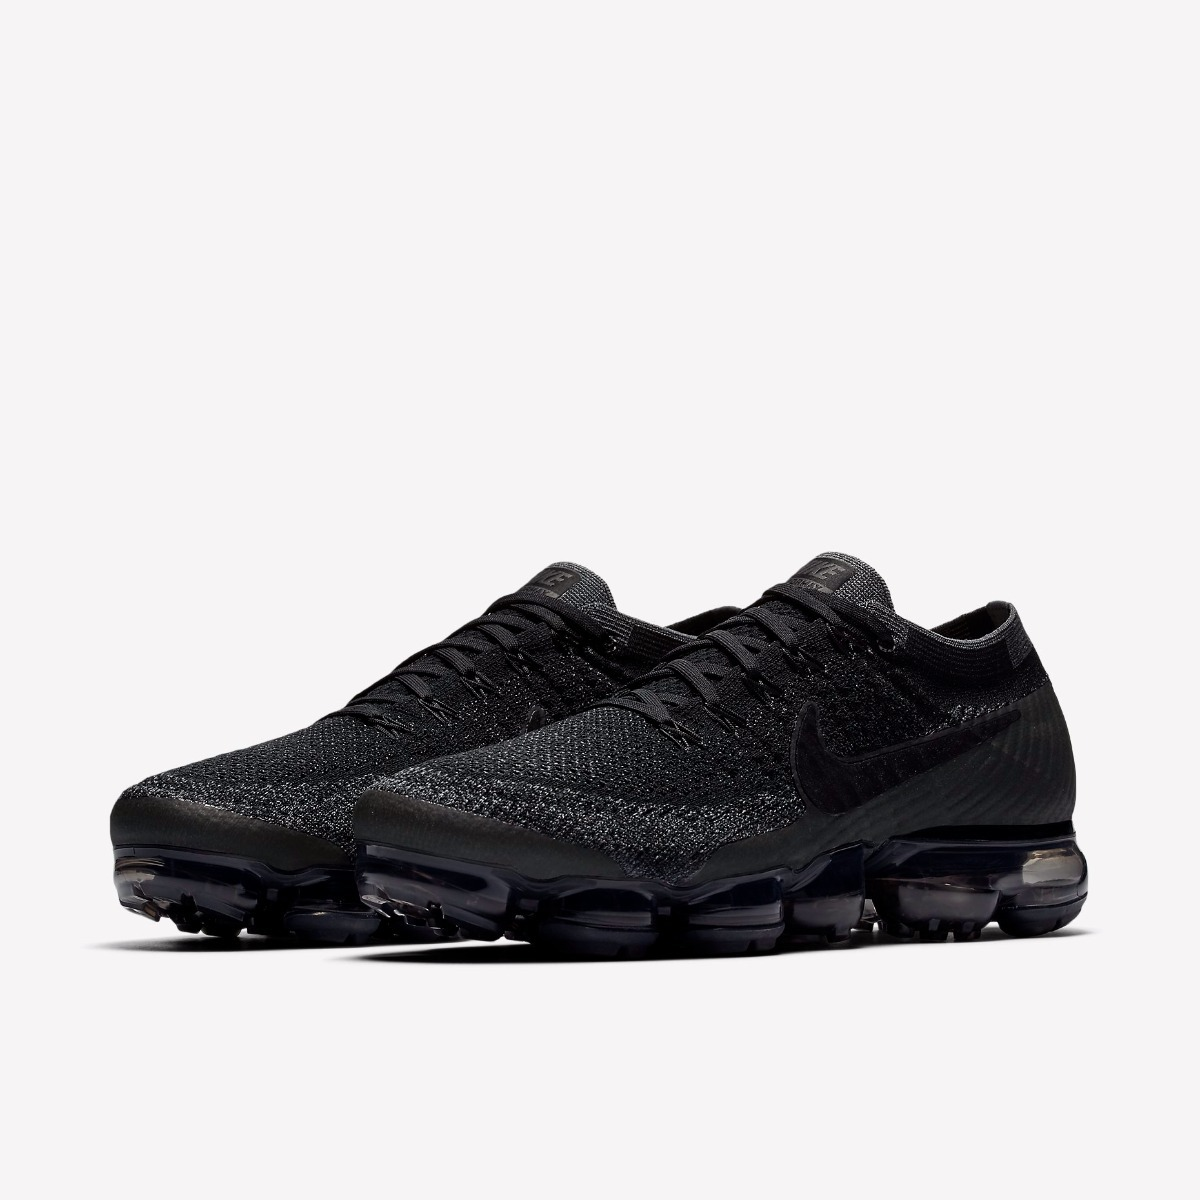 Original 619 S 00 Zapatillas Air Vapormax Nike xfnAwttZ8g